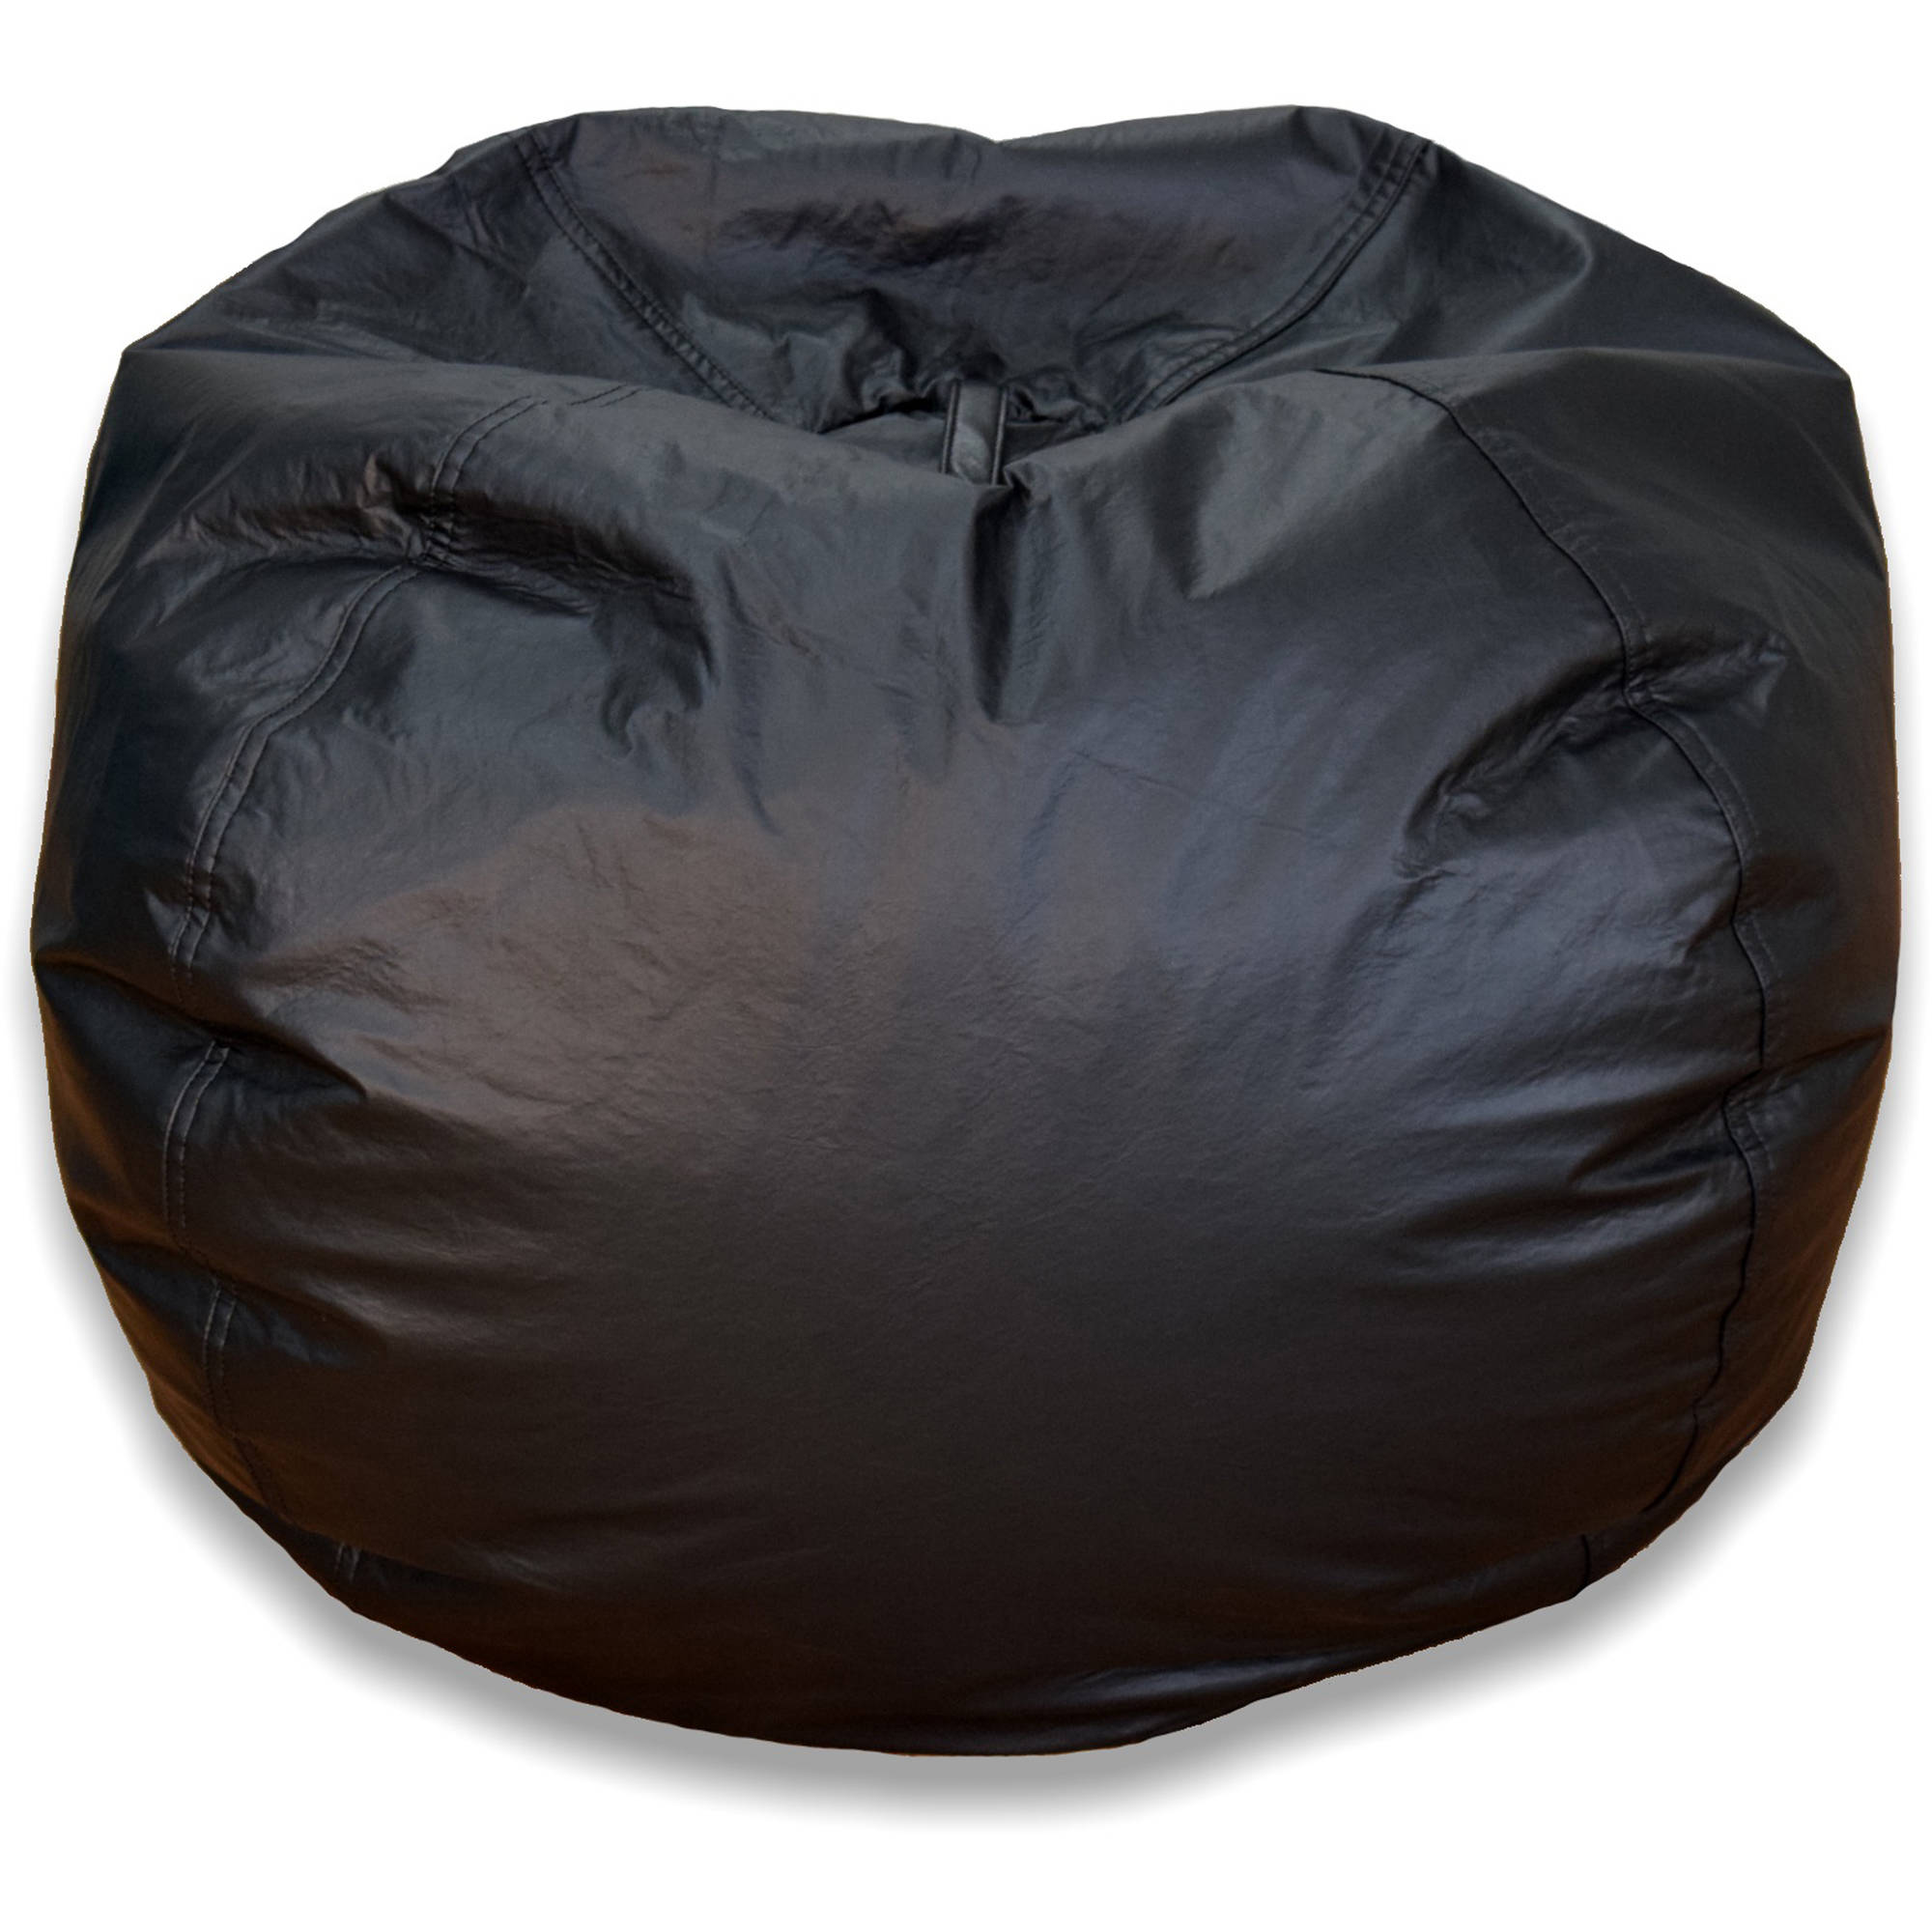 Jumbo Bean Bag Chair, Multiple Colors